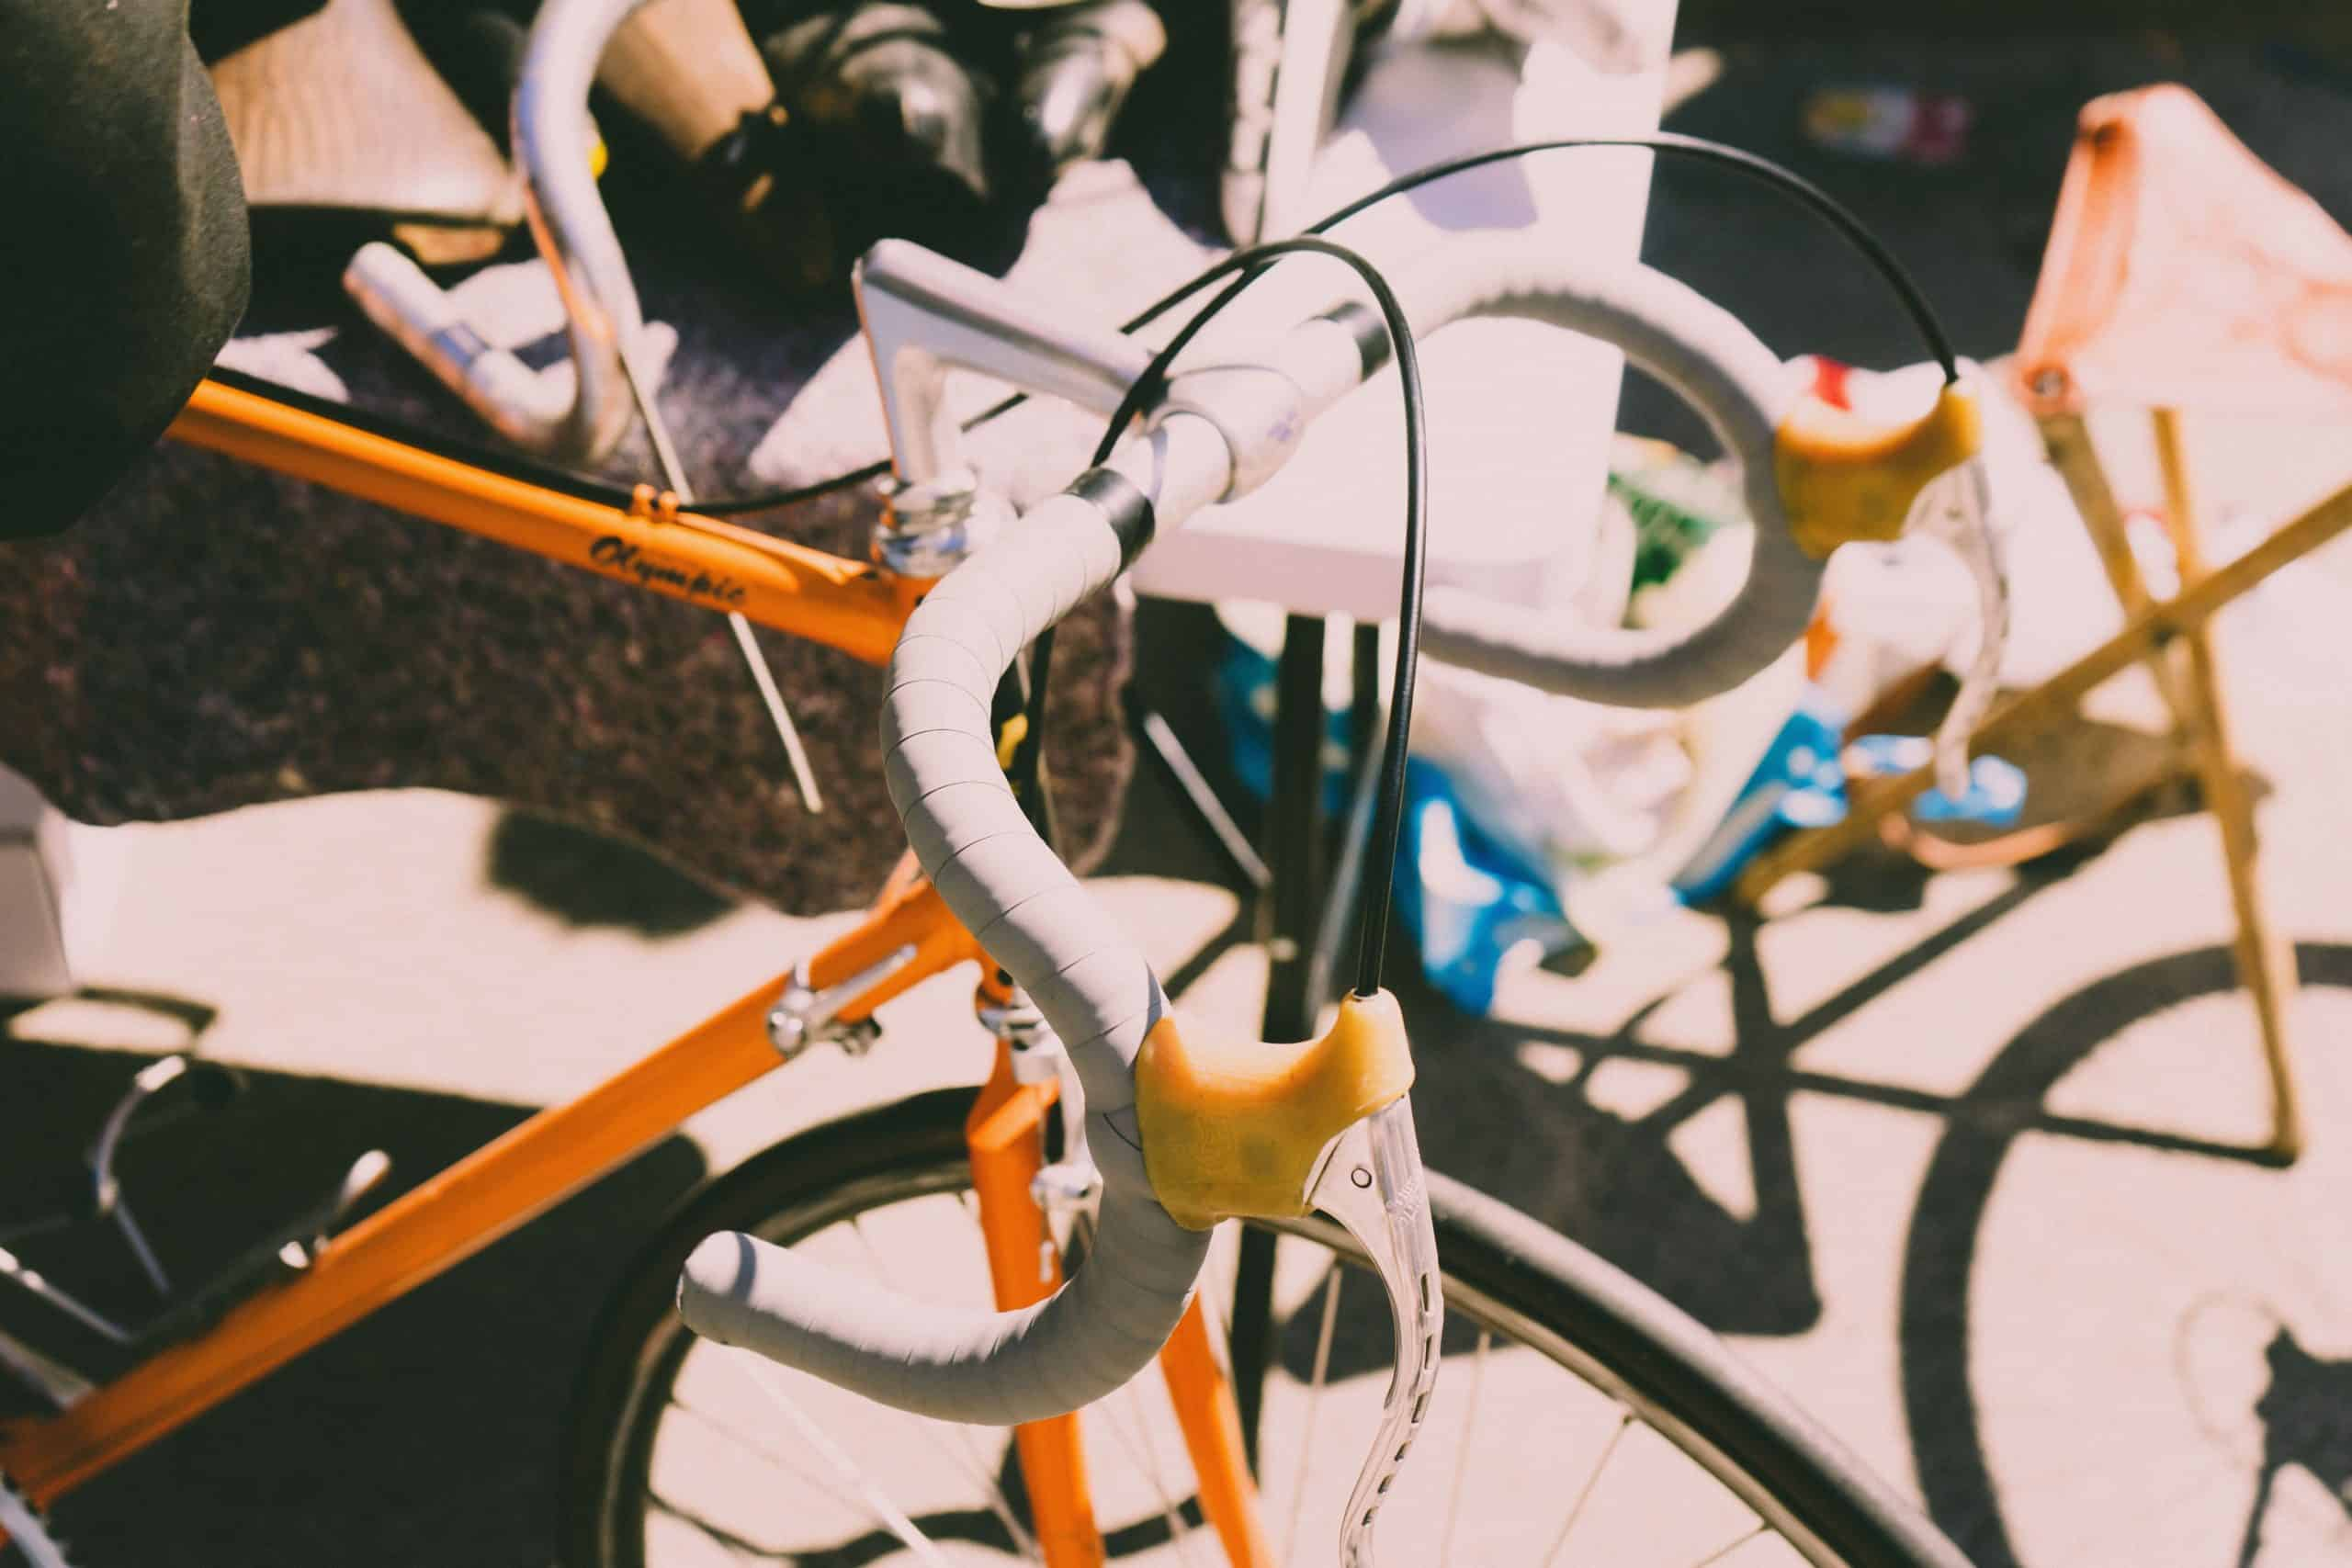 Biking Accessories: Things To Consider When Buying